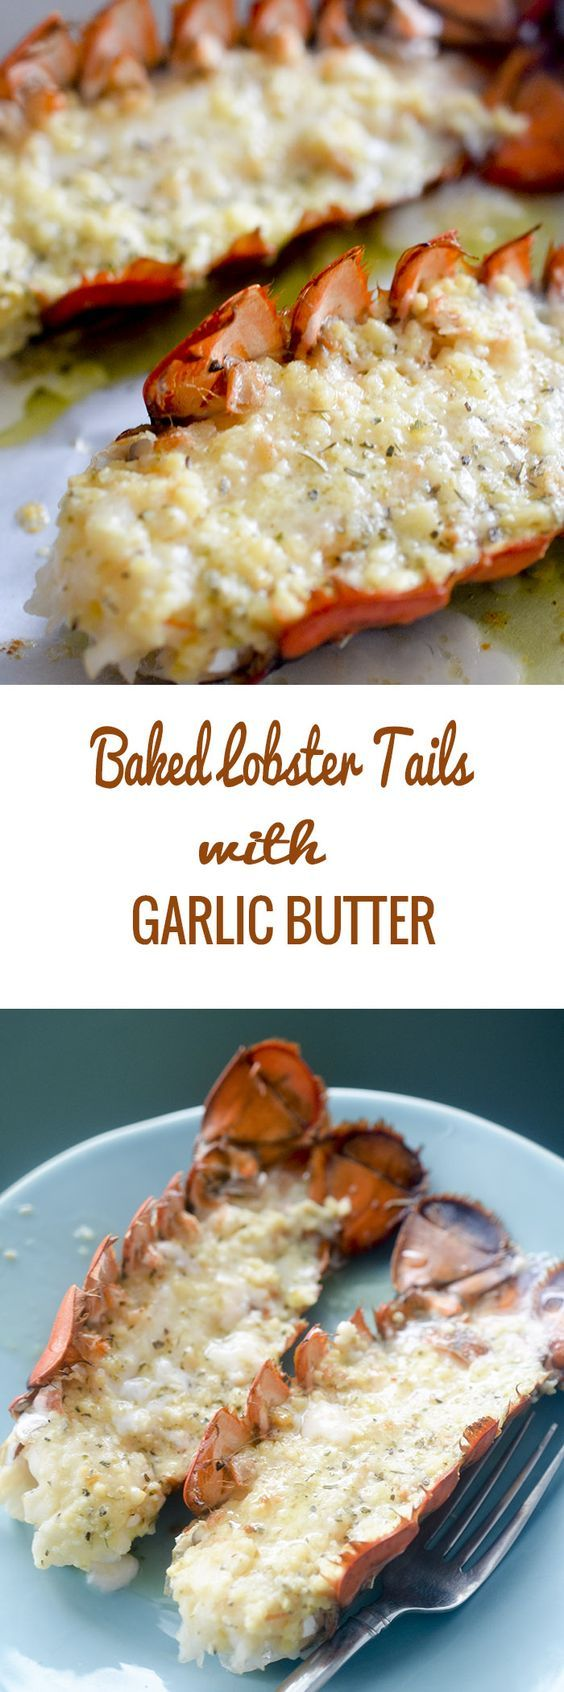 Baked Lobster Tails with Garlic Butter - Recipe Diaries #seafooddishes